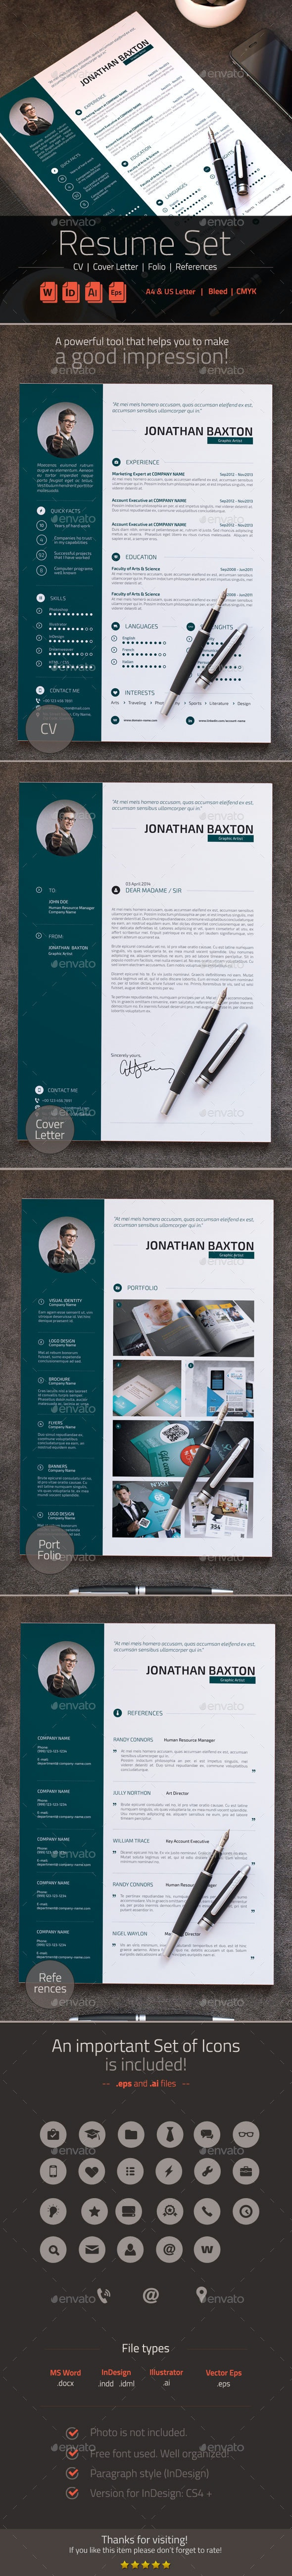 Simple Resume CV Set - Resumes Stationery